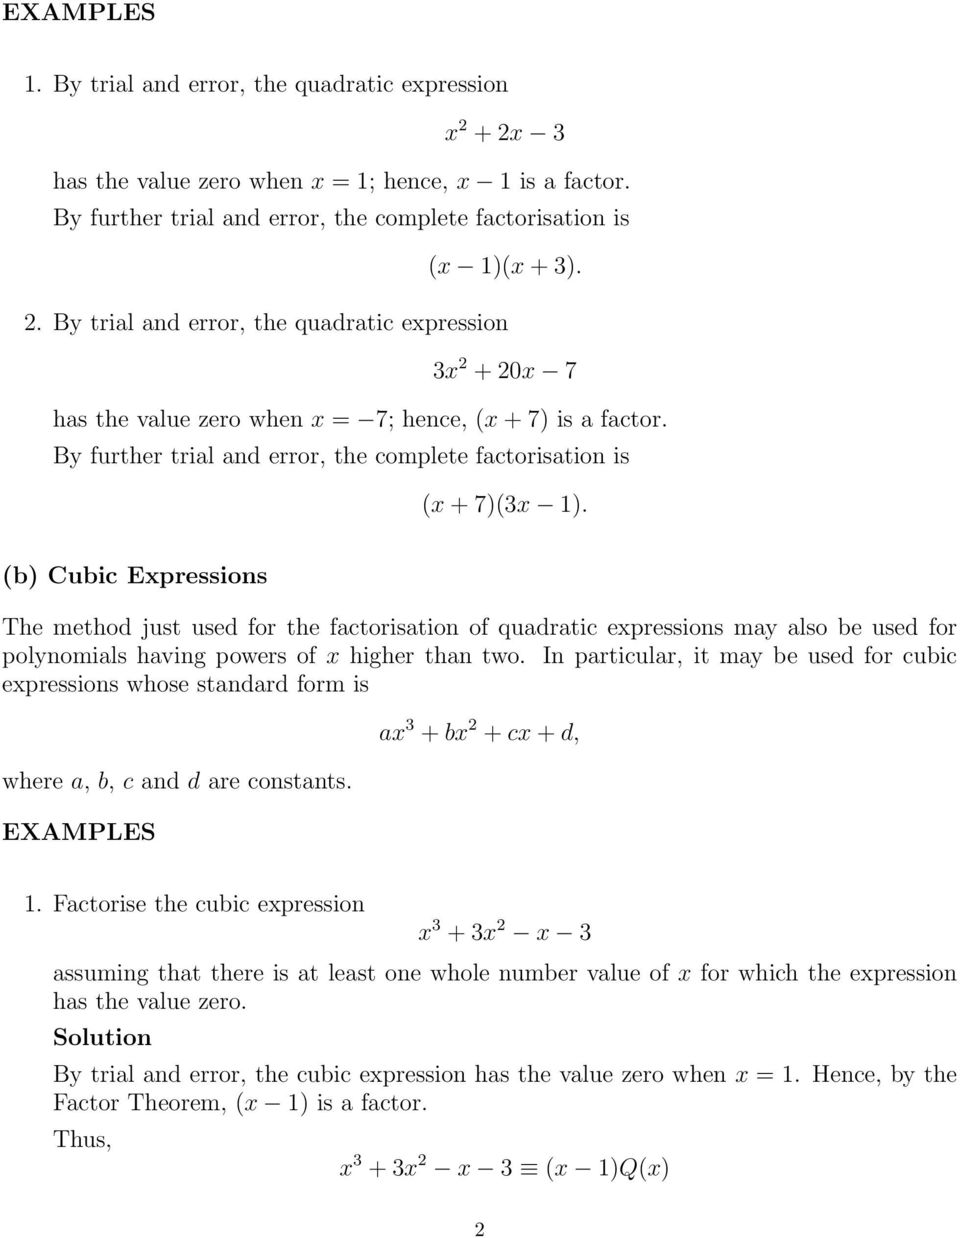 (b) Cubic Expressions The method just used for the factorisation of quadratic expressions may also be used for polynomials having powers of x higher than two.